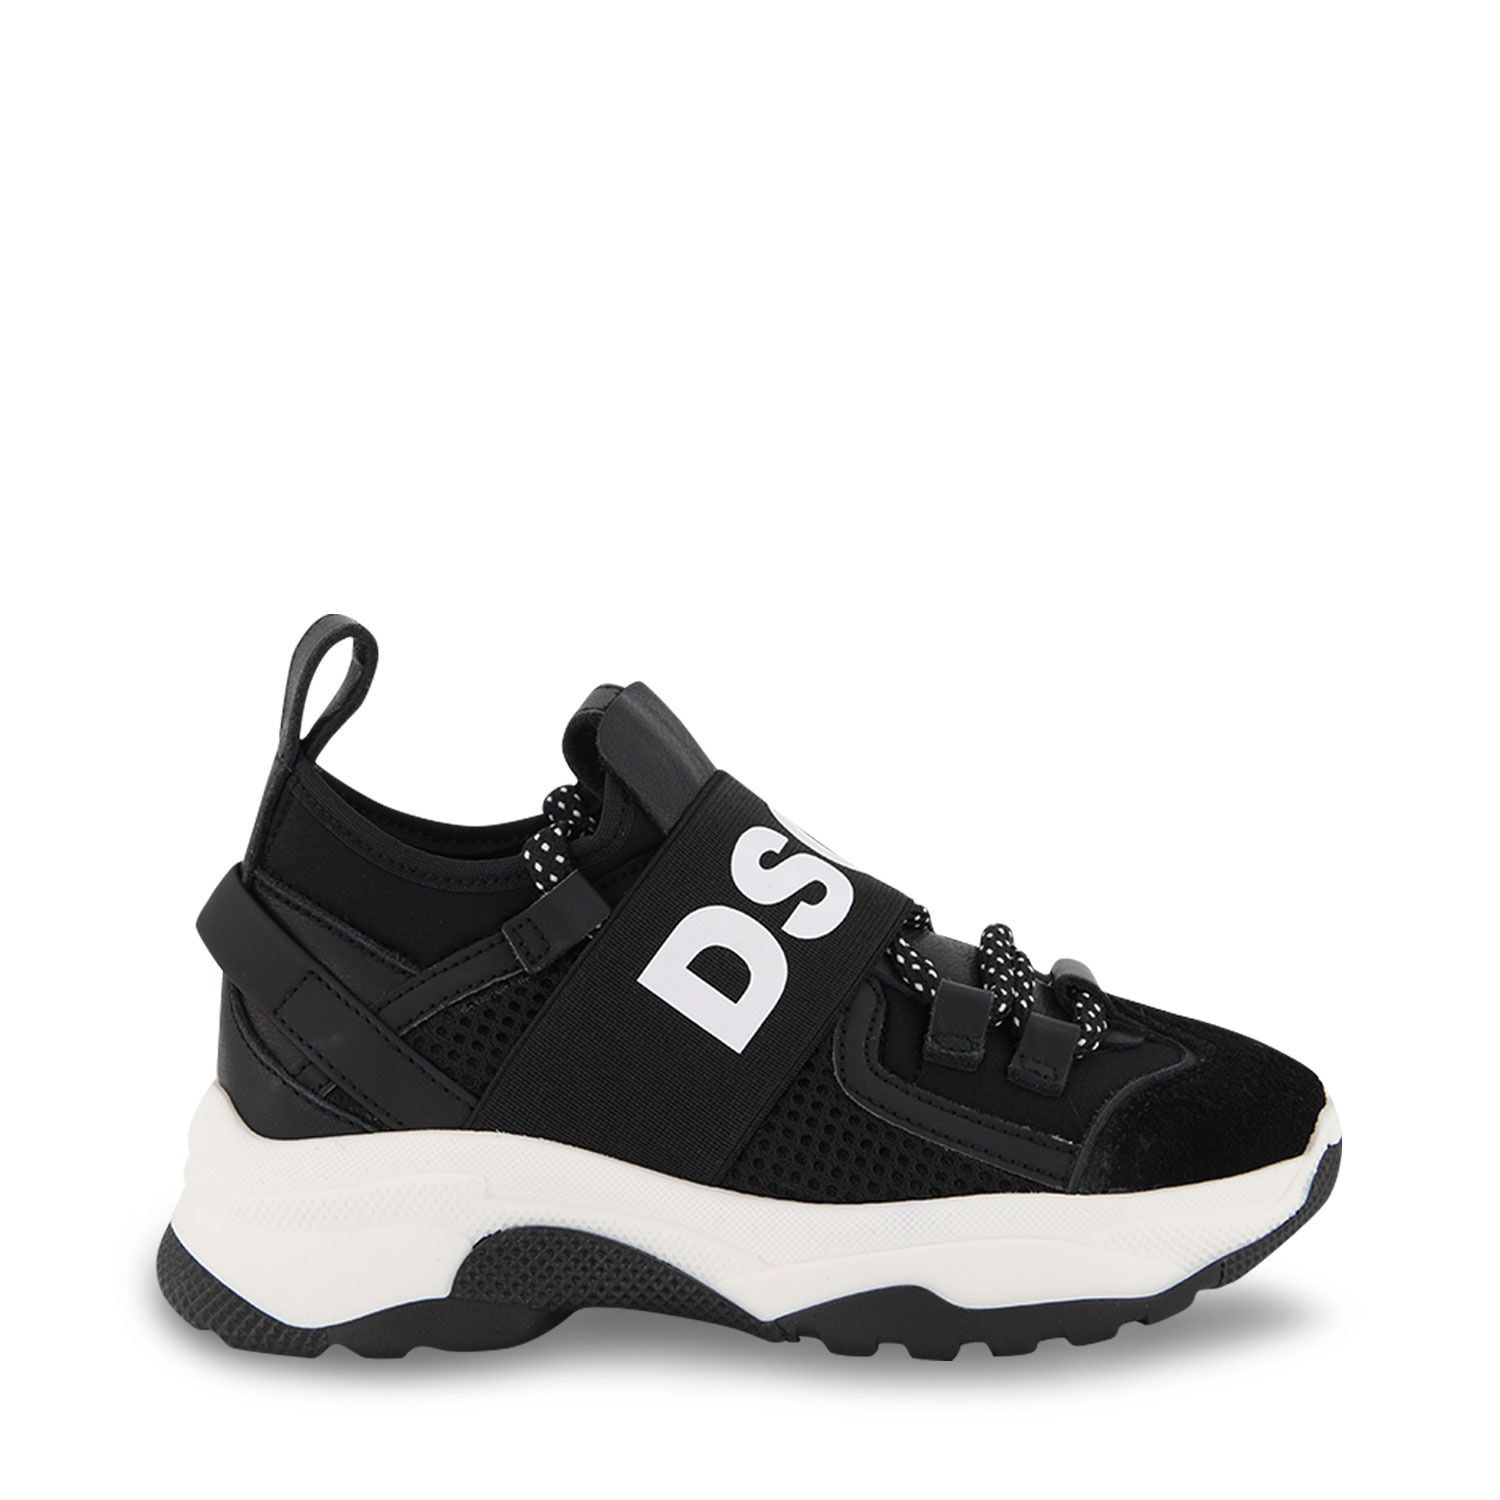 Picture of Dsquared2 68556 kids sneakers black